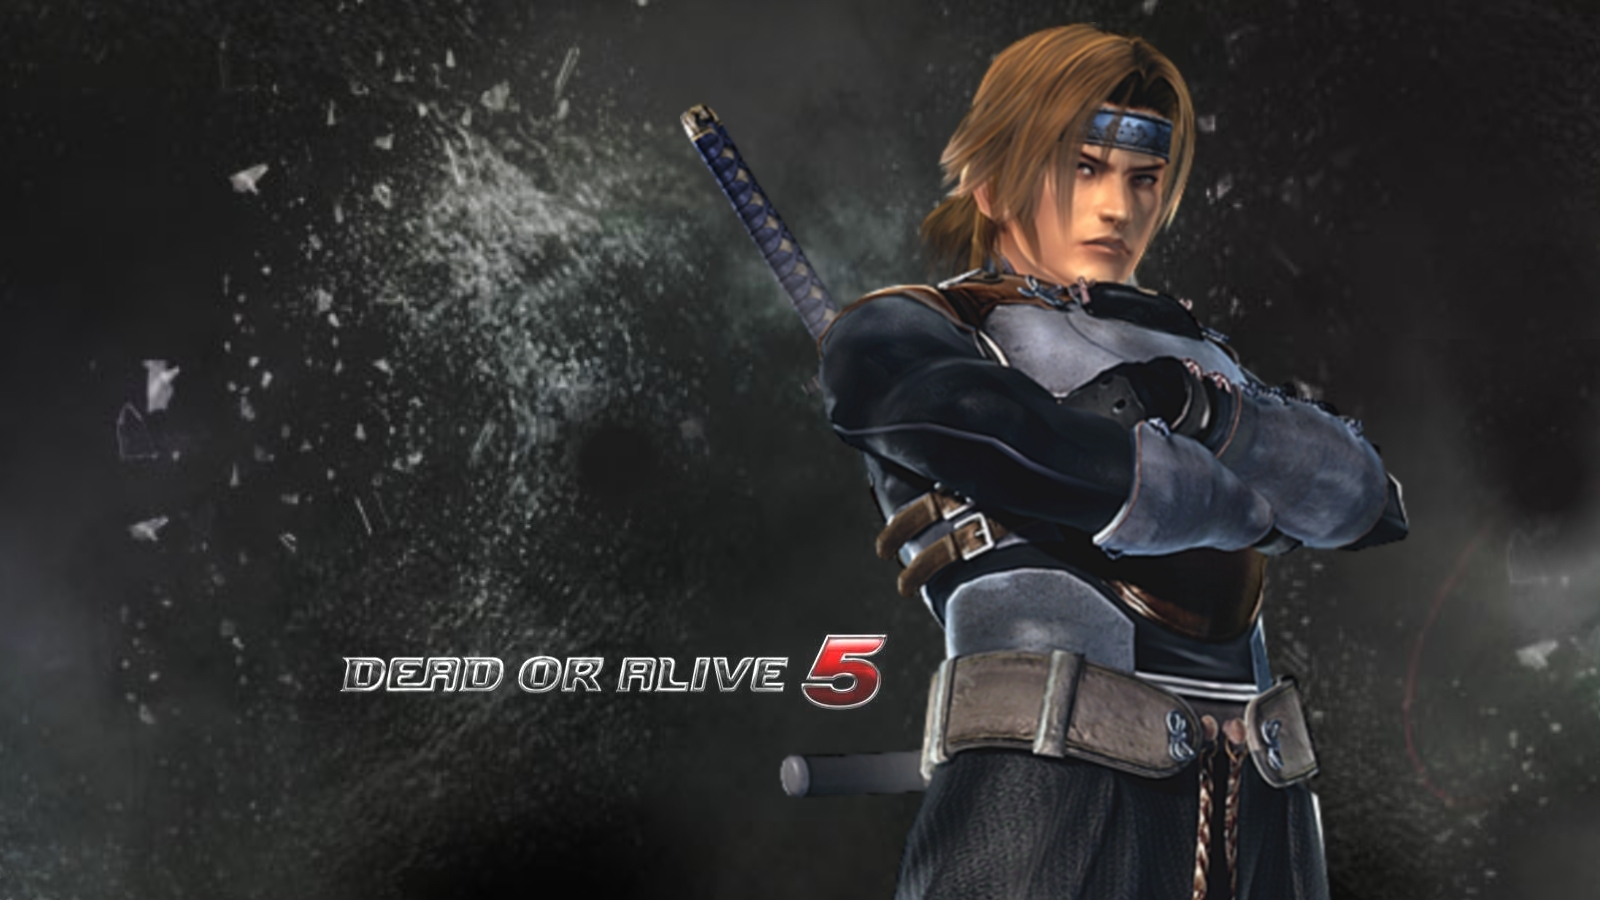 Free Download Hayate Dead Or Alive 5 Wallpaper 1600x900 For Your